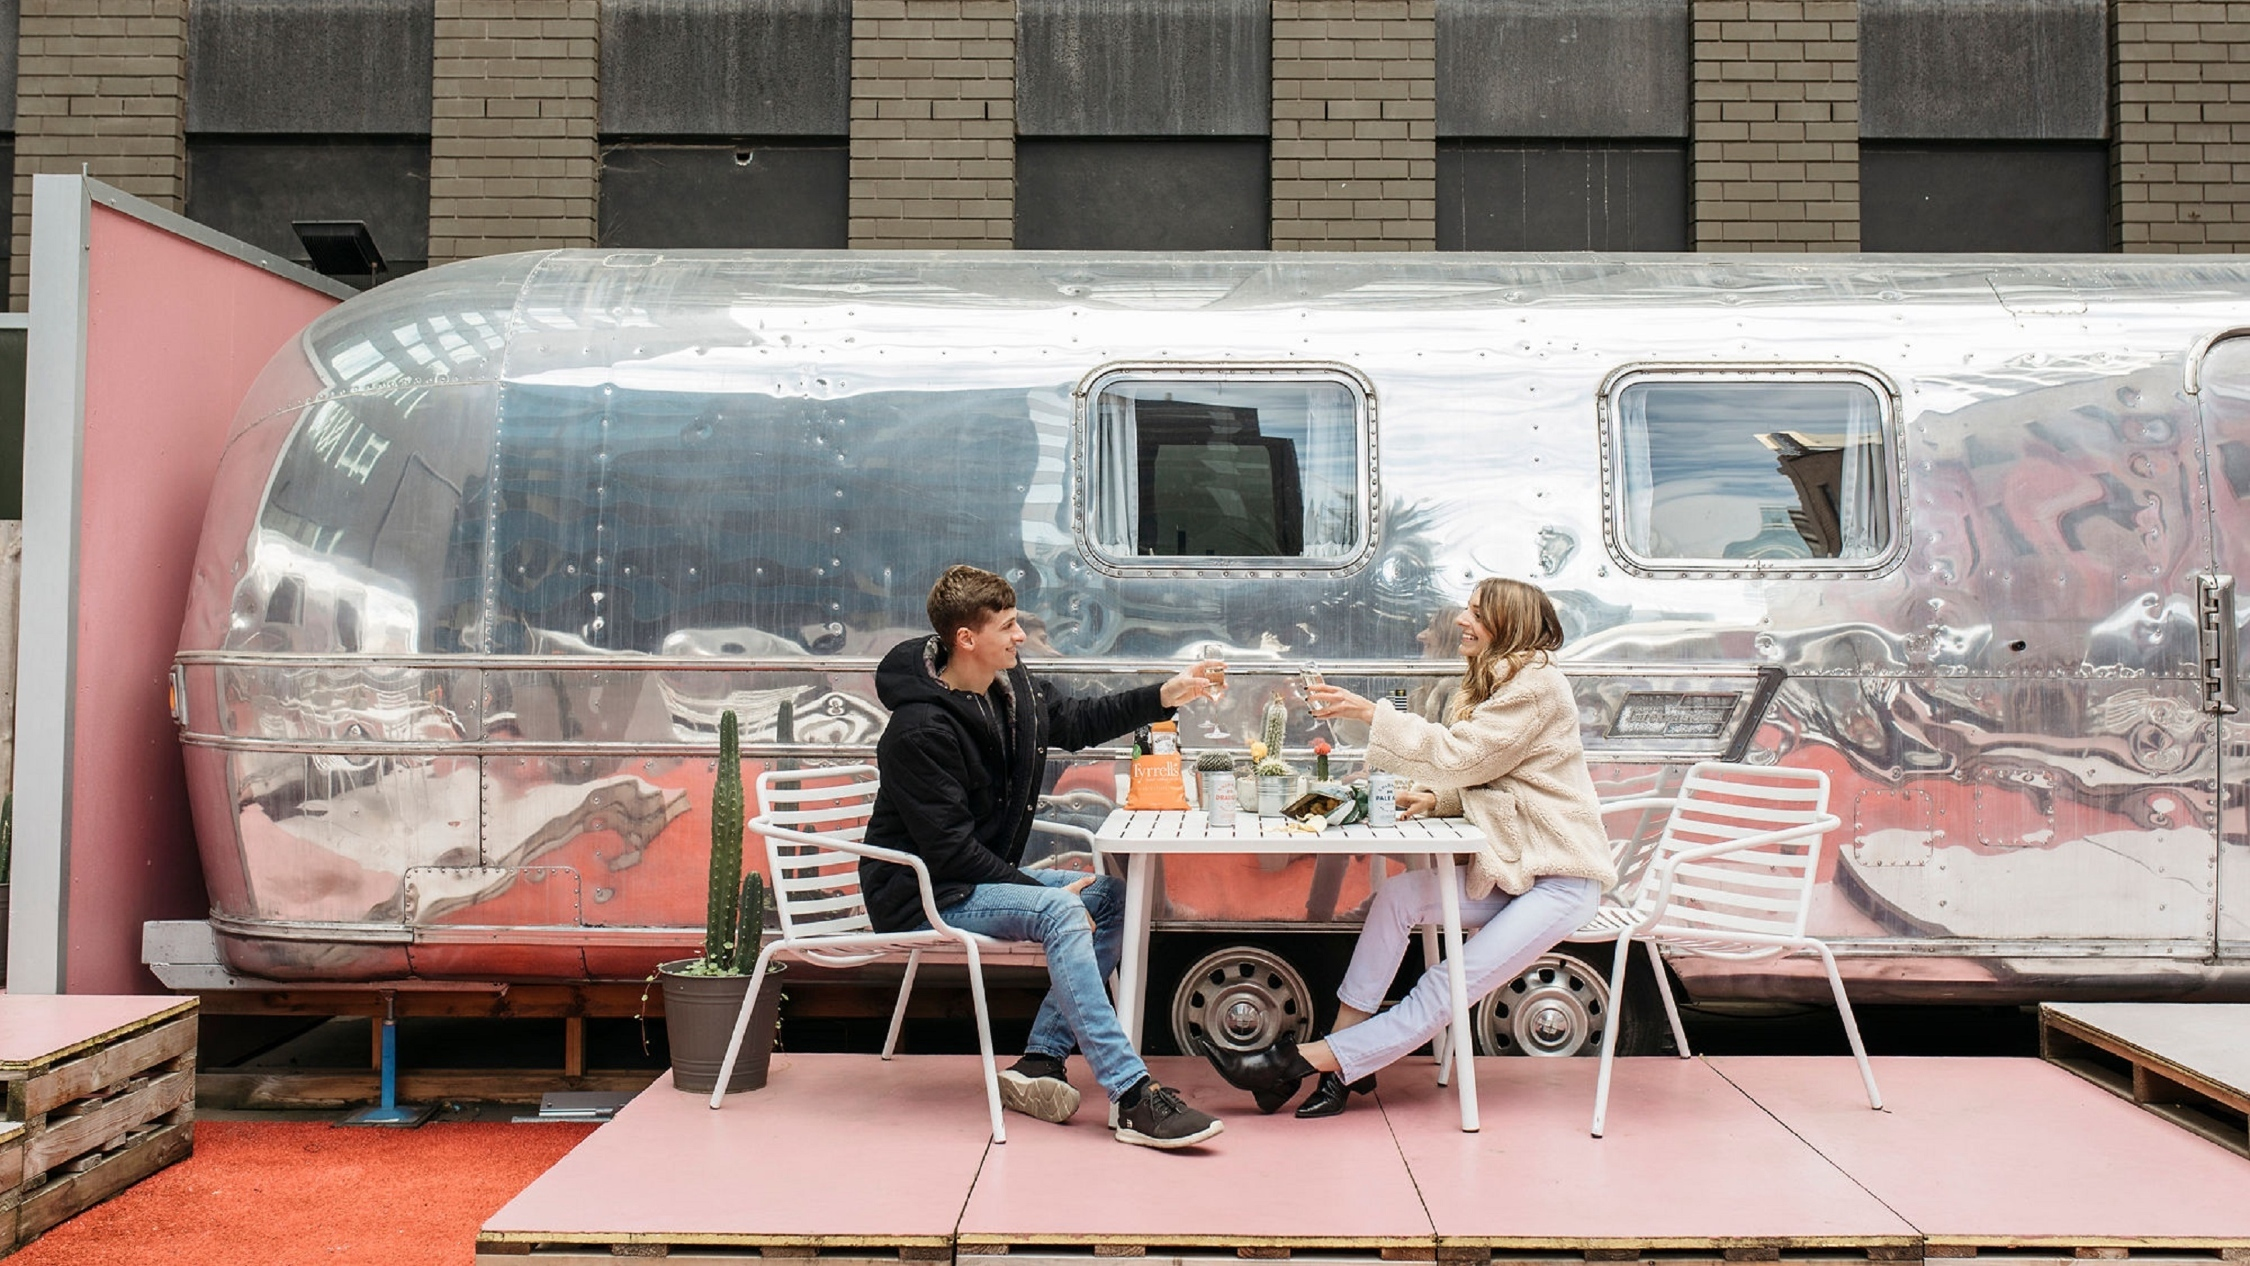 Notel, Melbourne's ultra-quirky rooftop caravan hotel